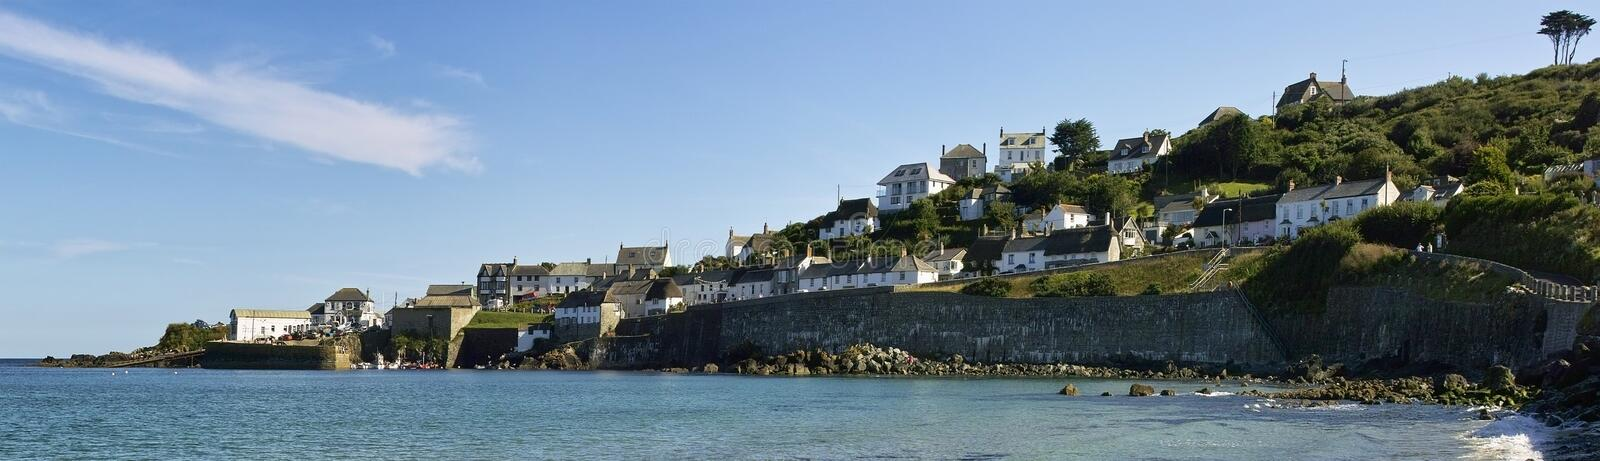 Coverack images stock